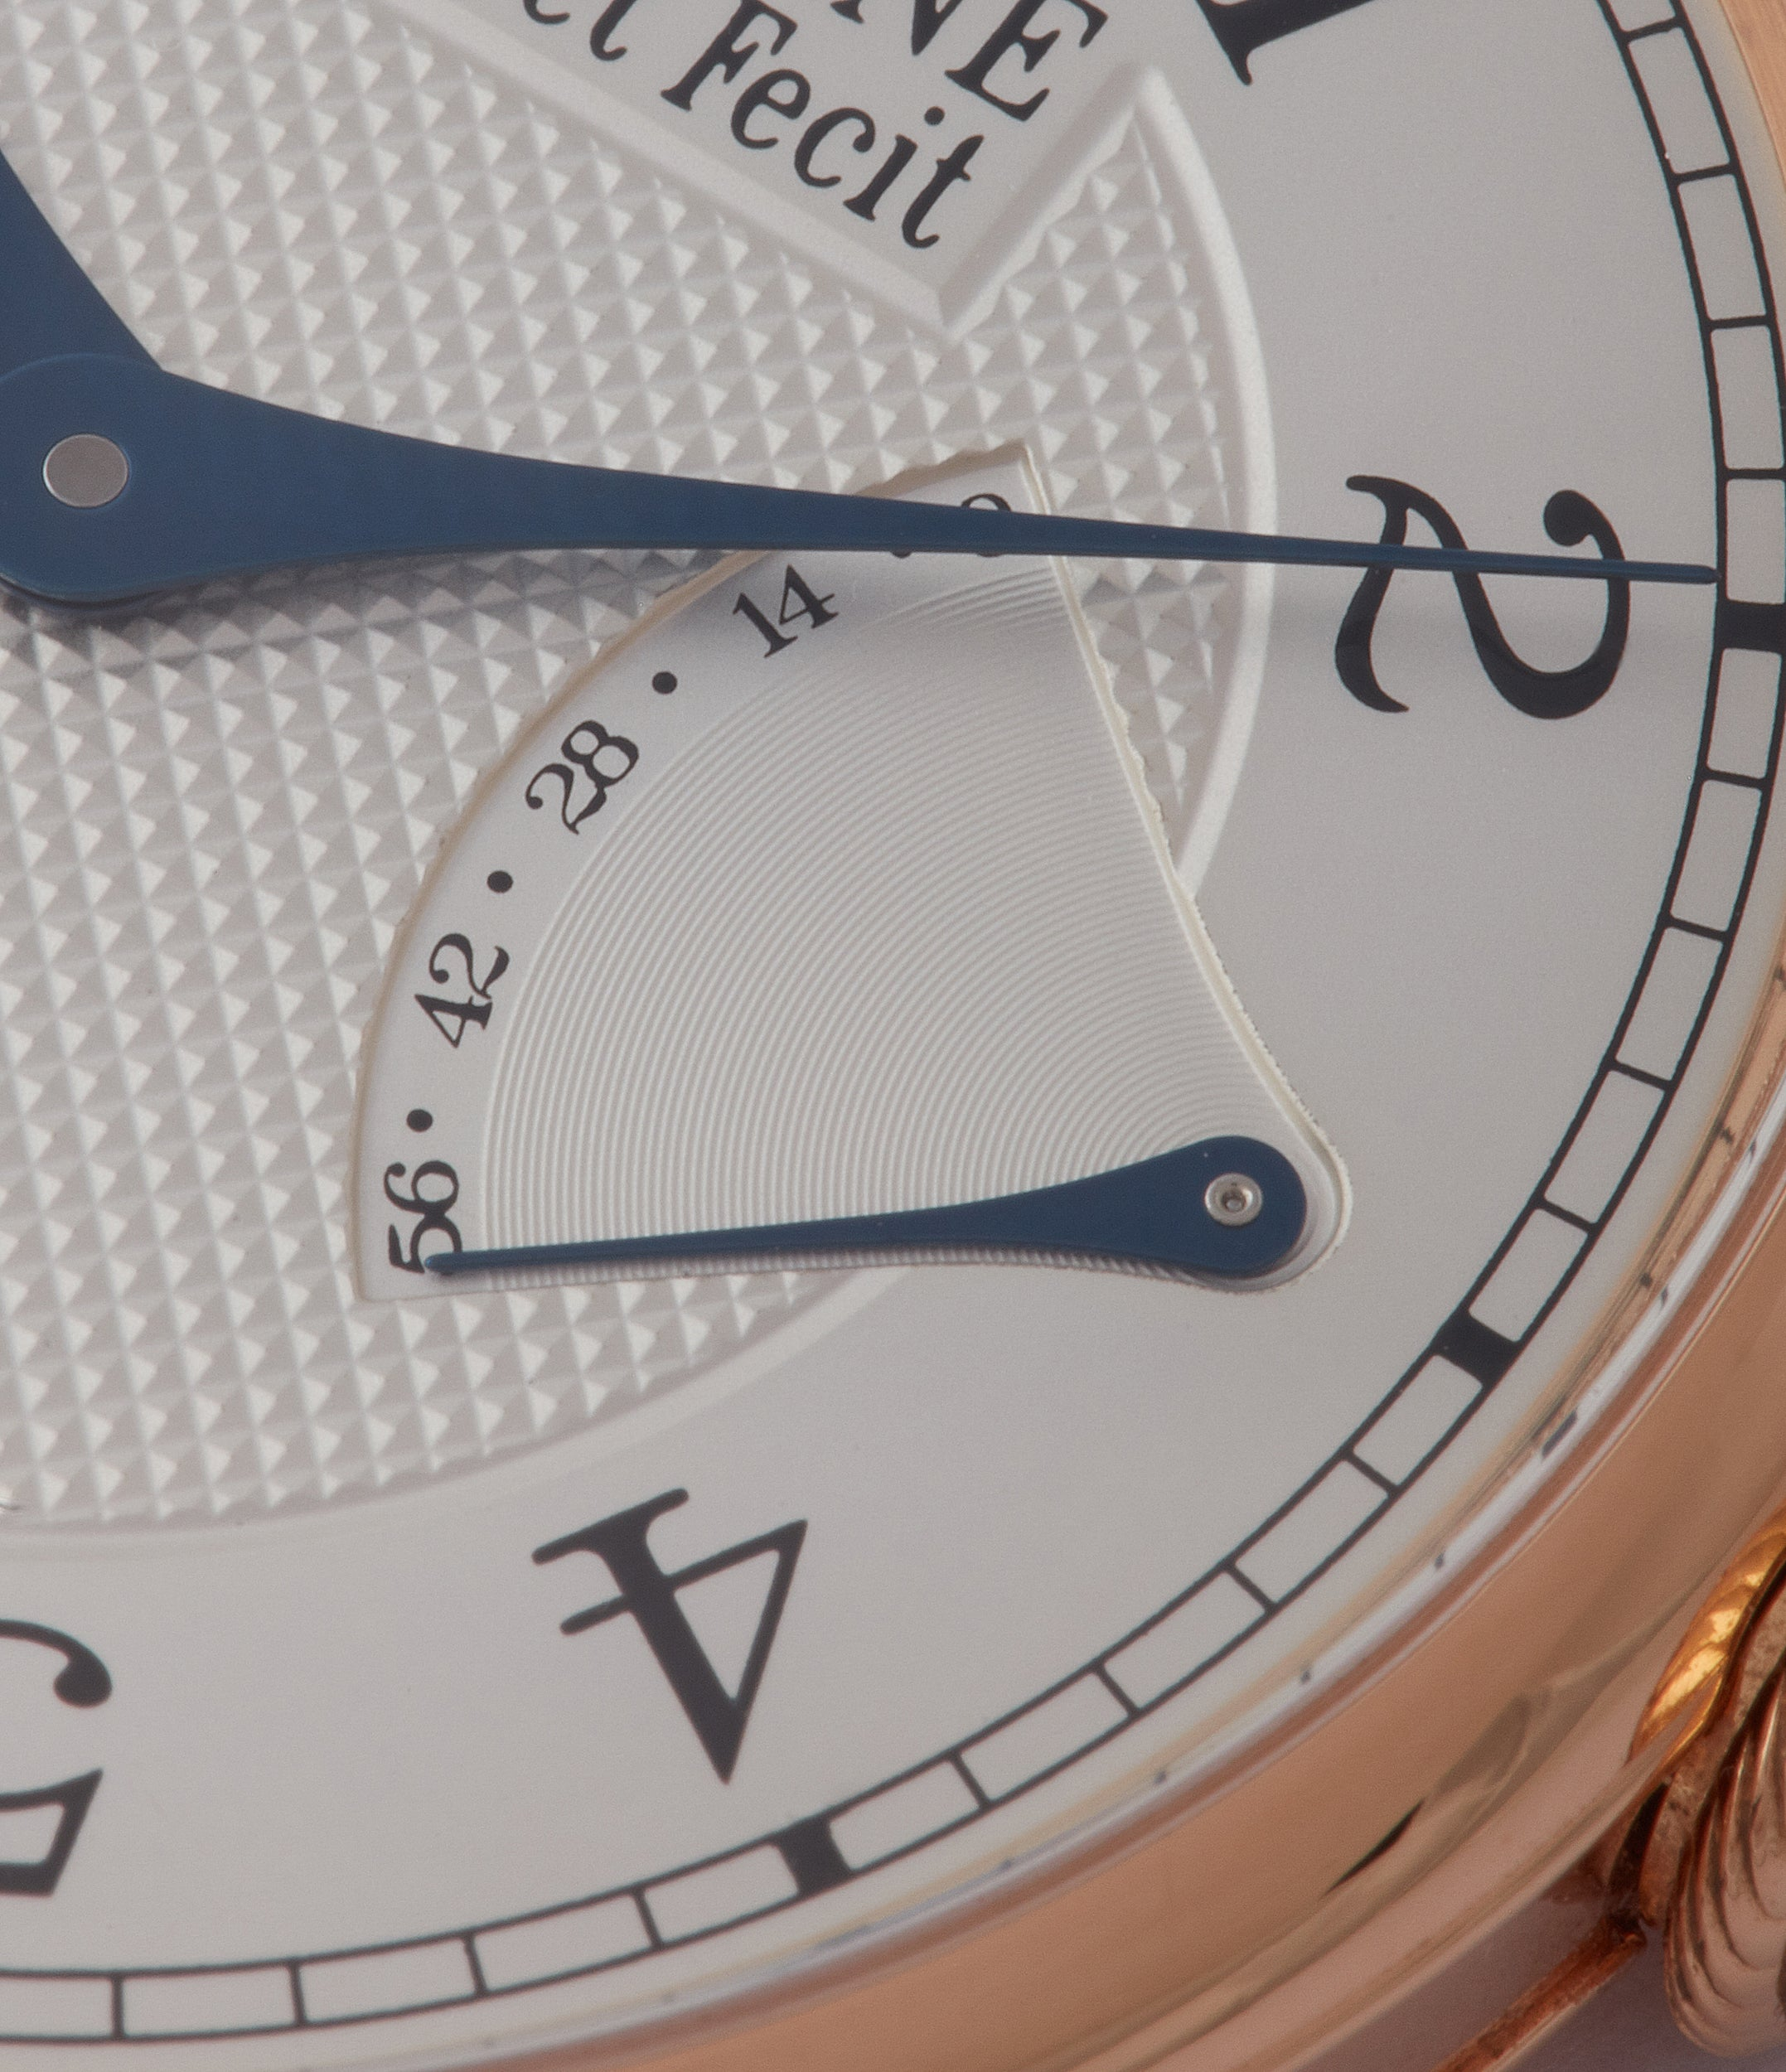 power reserve F. P. Journe Chronometre Souverain CS.RG.38 rose gold silver dial watch for sale online at A Collected Man London UK specialist of rare watches